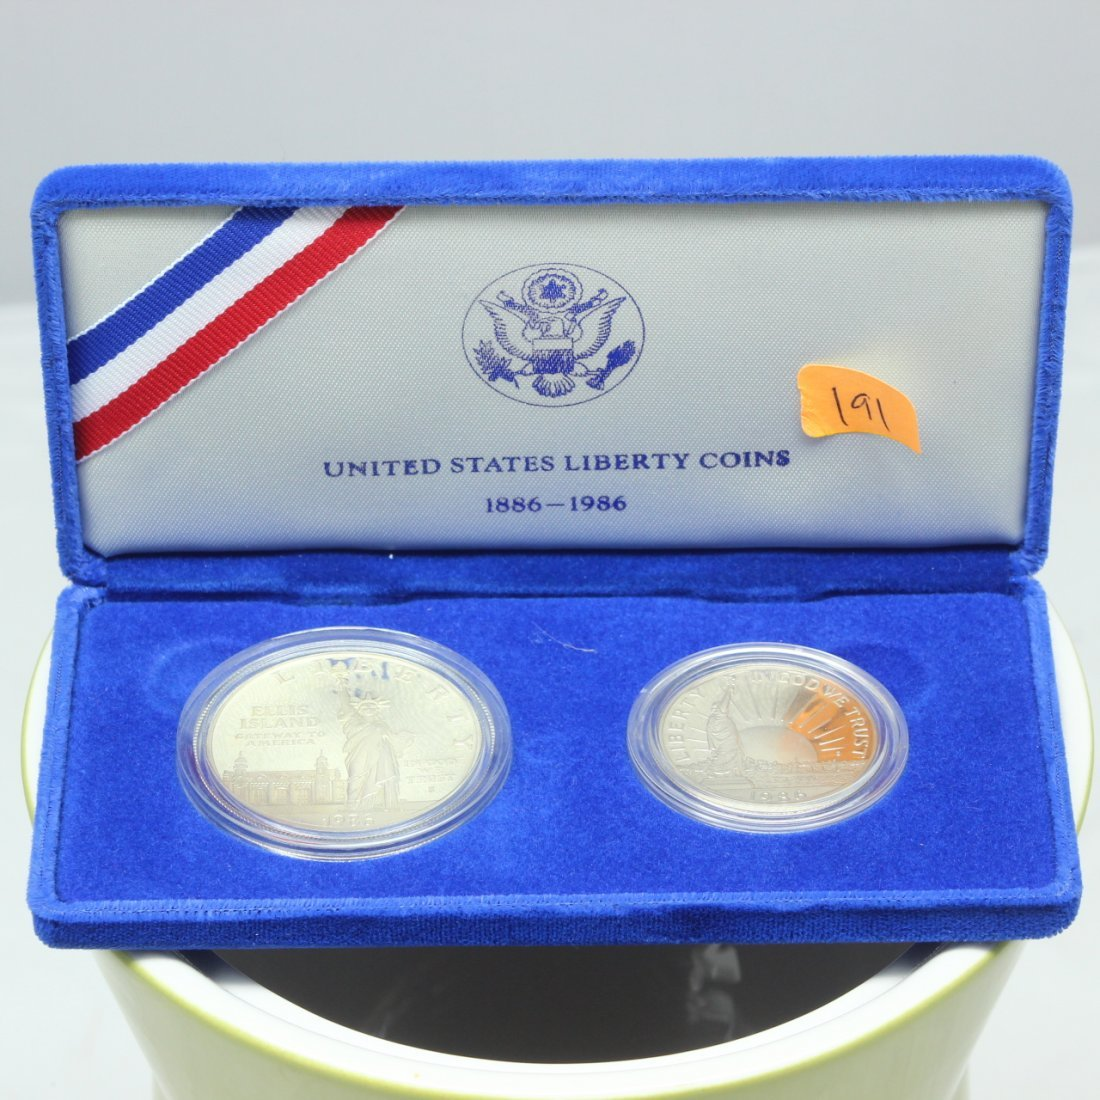 1886-1986 US Liberty Coin Proof Set Silver Dollar &